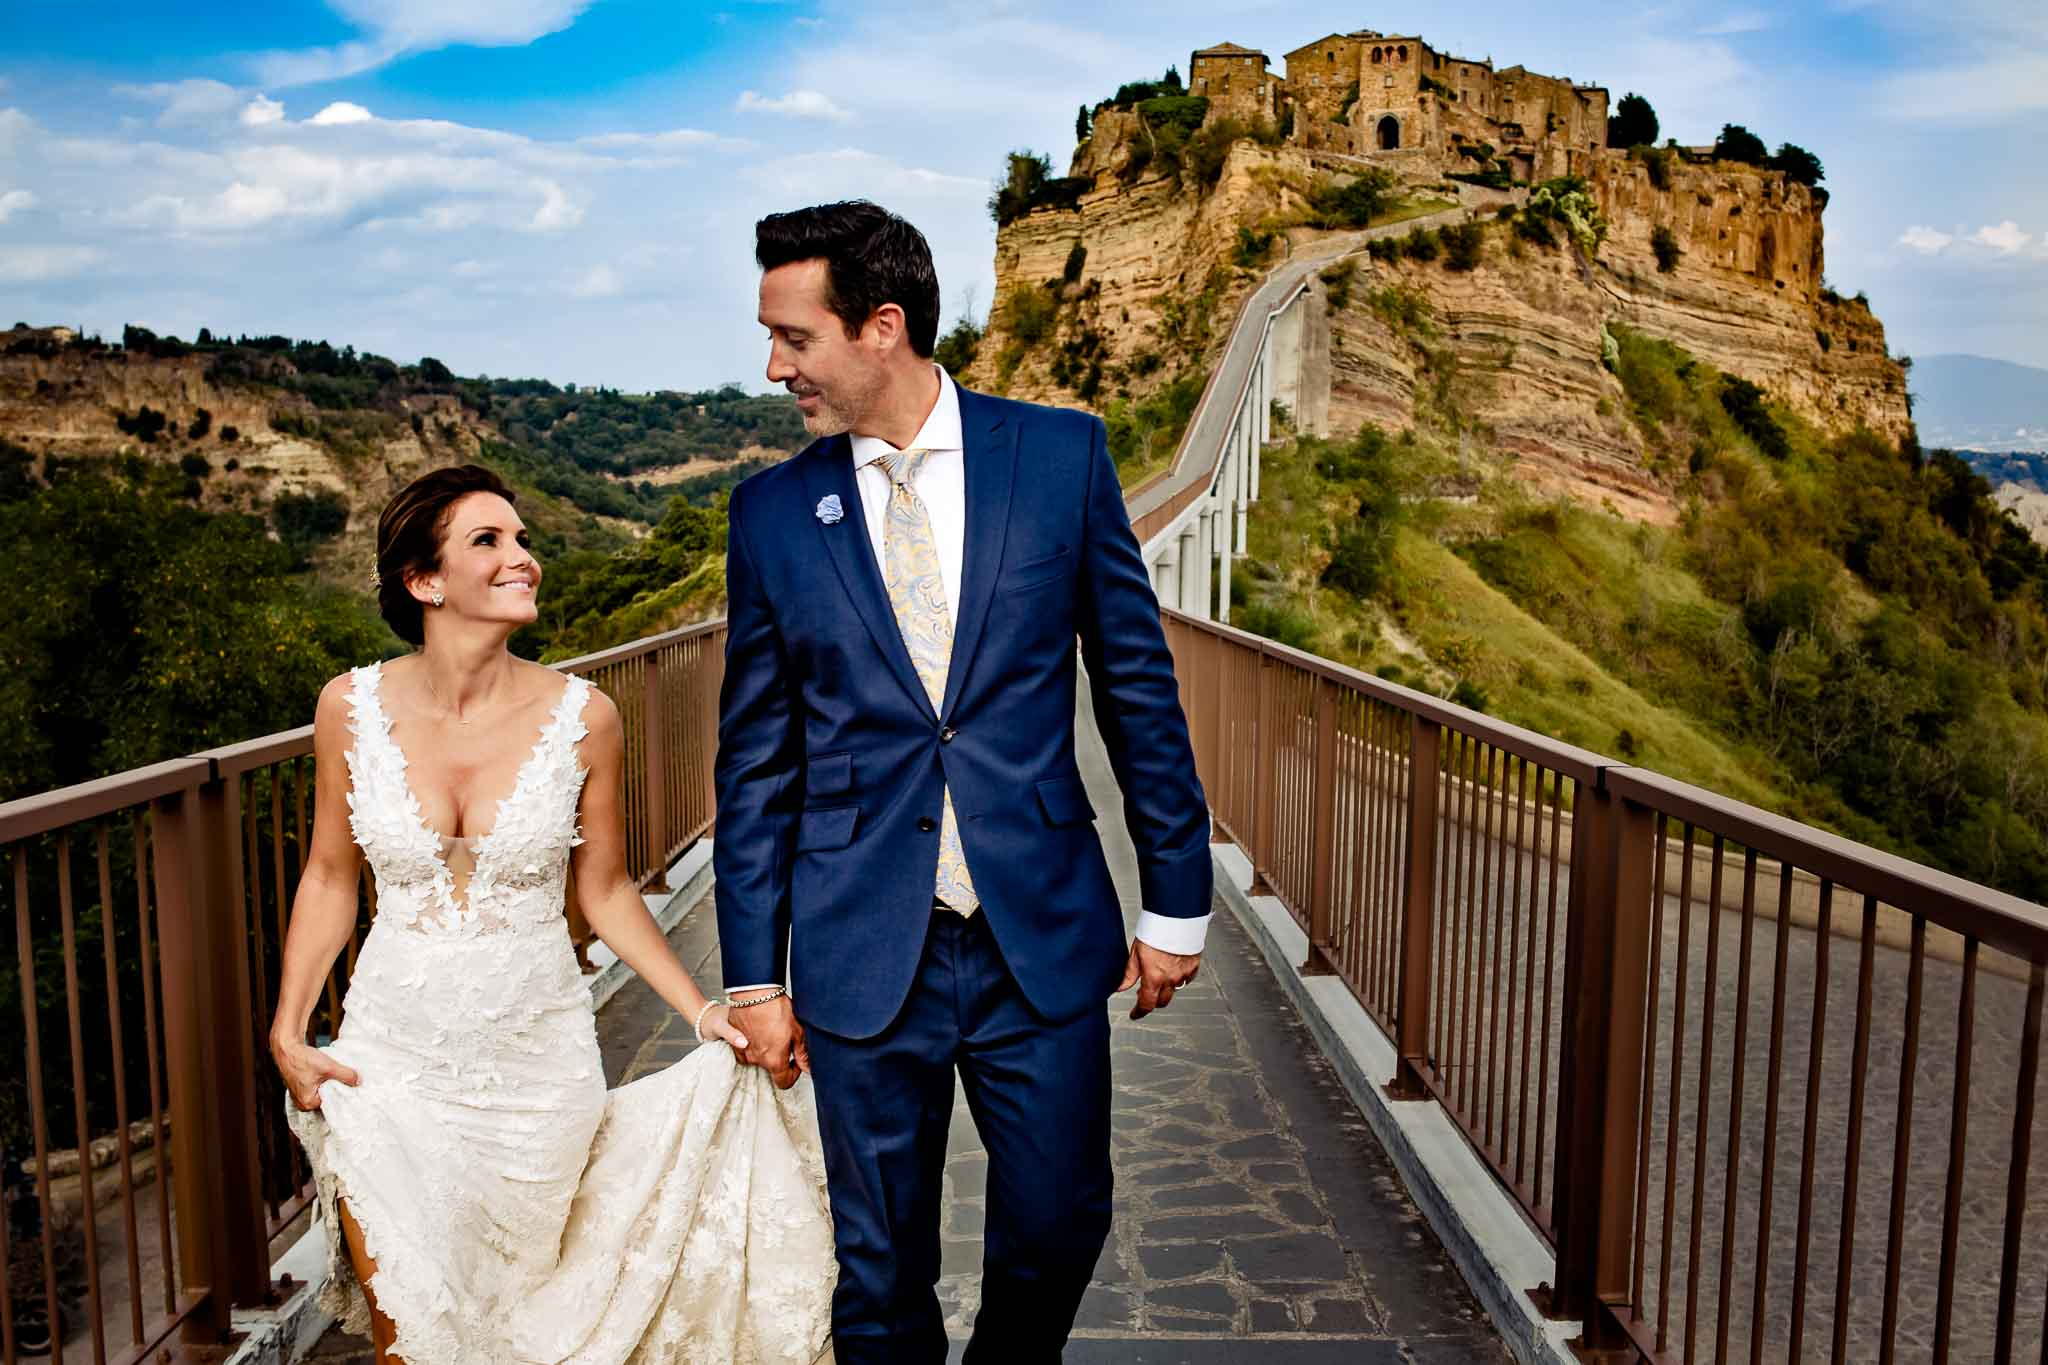 Bride and groom walking in Italy at Civita de Bagnoregio